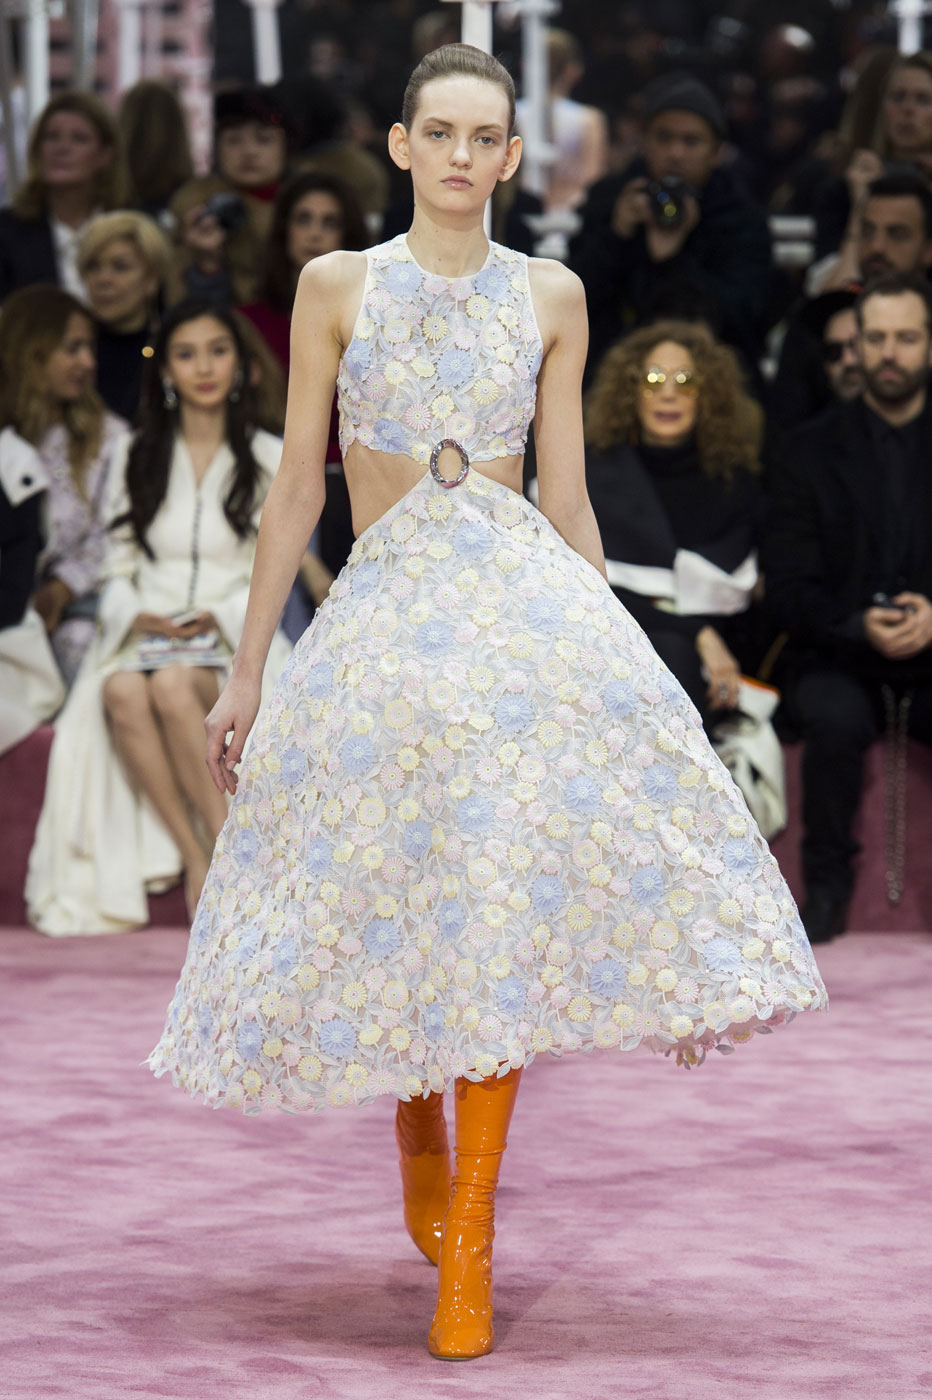 Christian-Dior-fashion-runway-show-haute-couture-paris-spring-summer-2015-the-impression-035